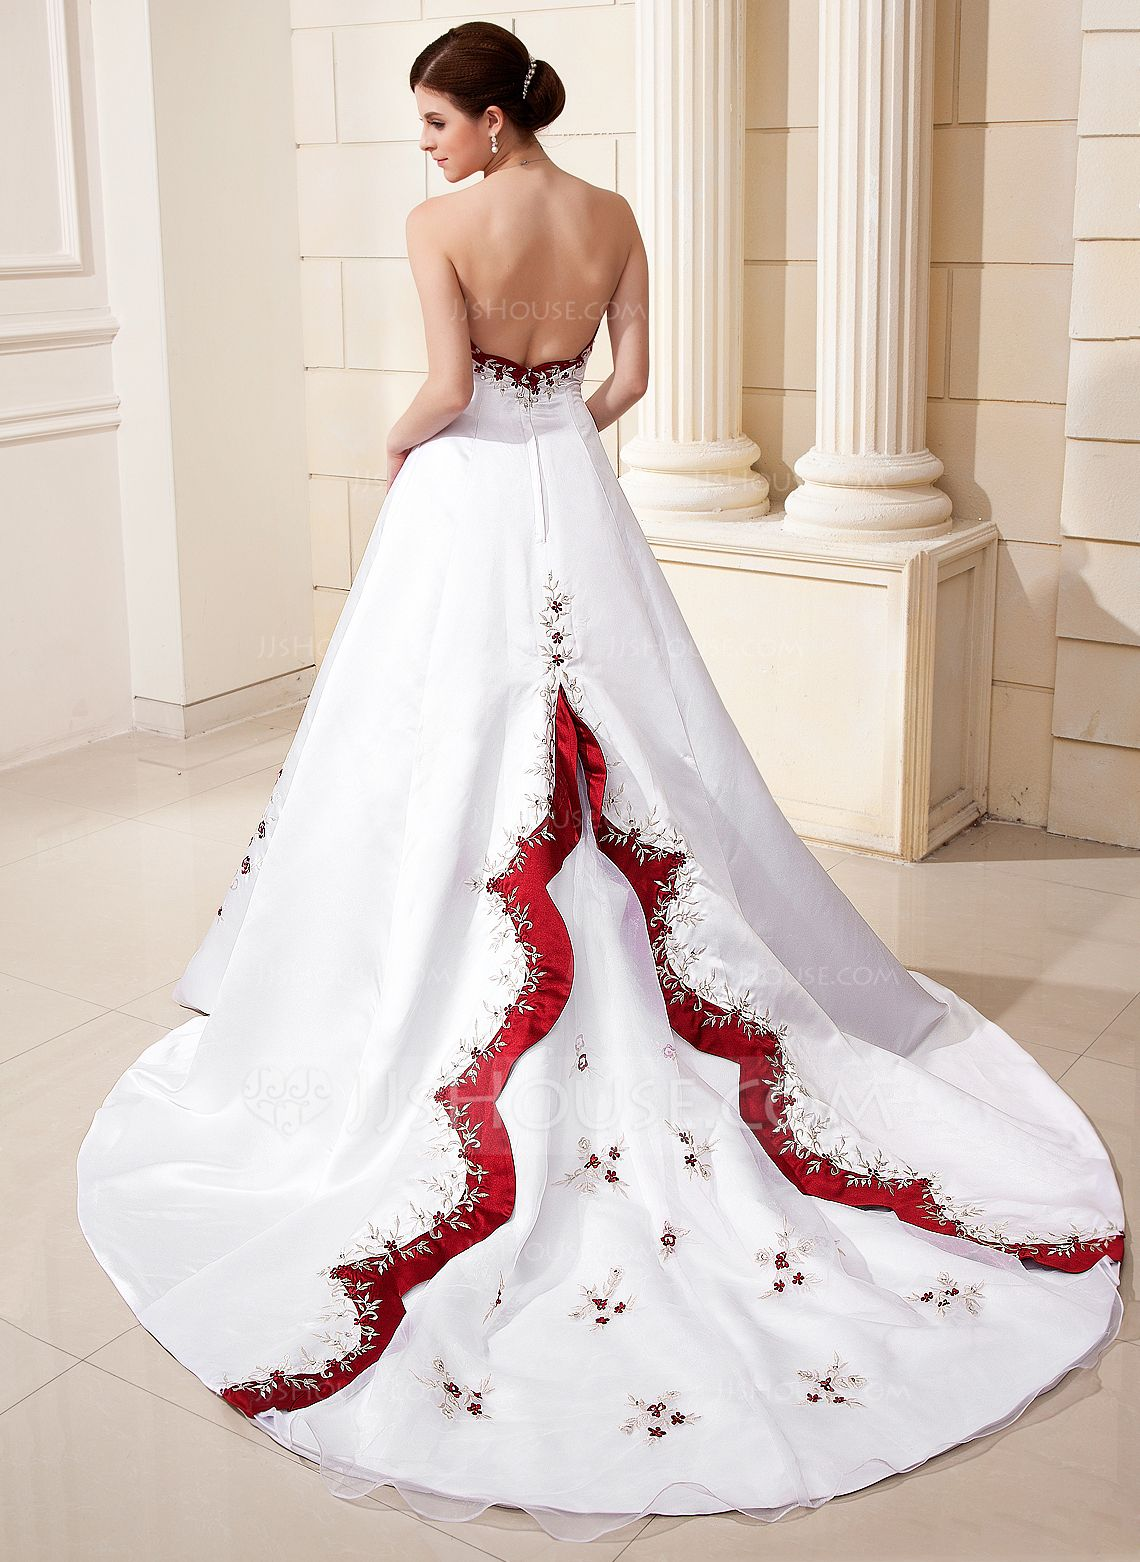 63d1172d20a1 Ball-Gown Sweetheart Cathedral Train Organza Satin Wedding Dress With  Embroidered Beading Sequins (002011569) - JJsHouse